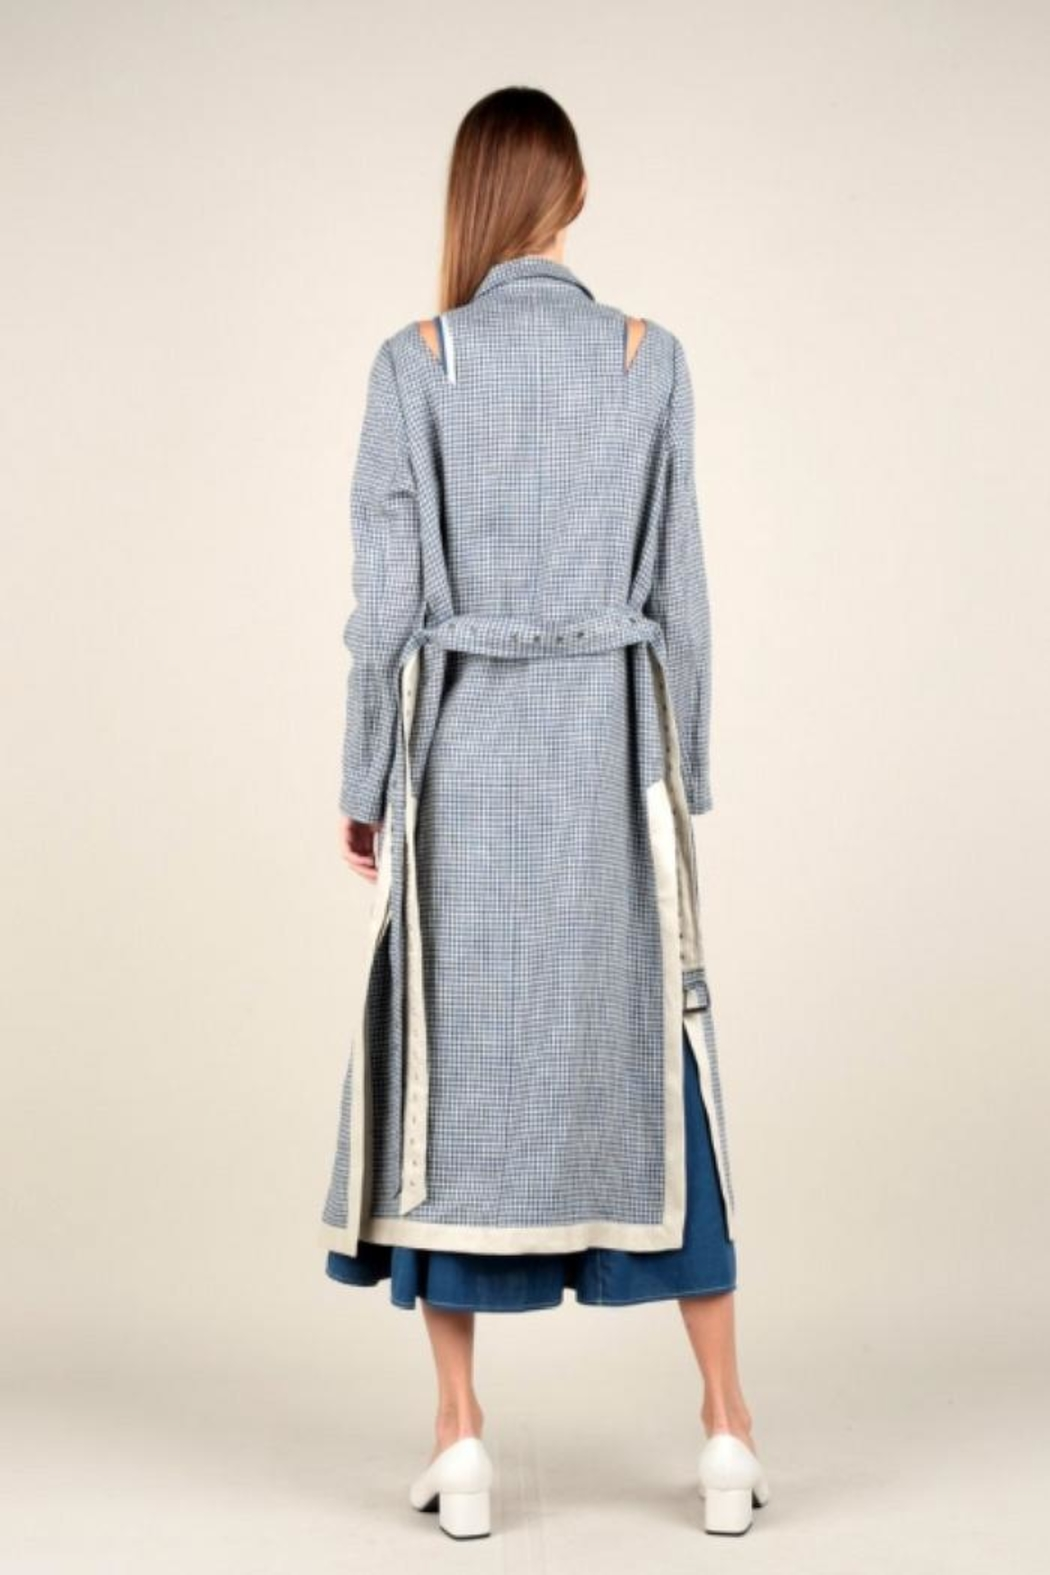 Current Air Gingham Trench Coat - Front Full Image